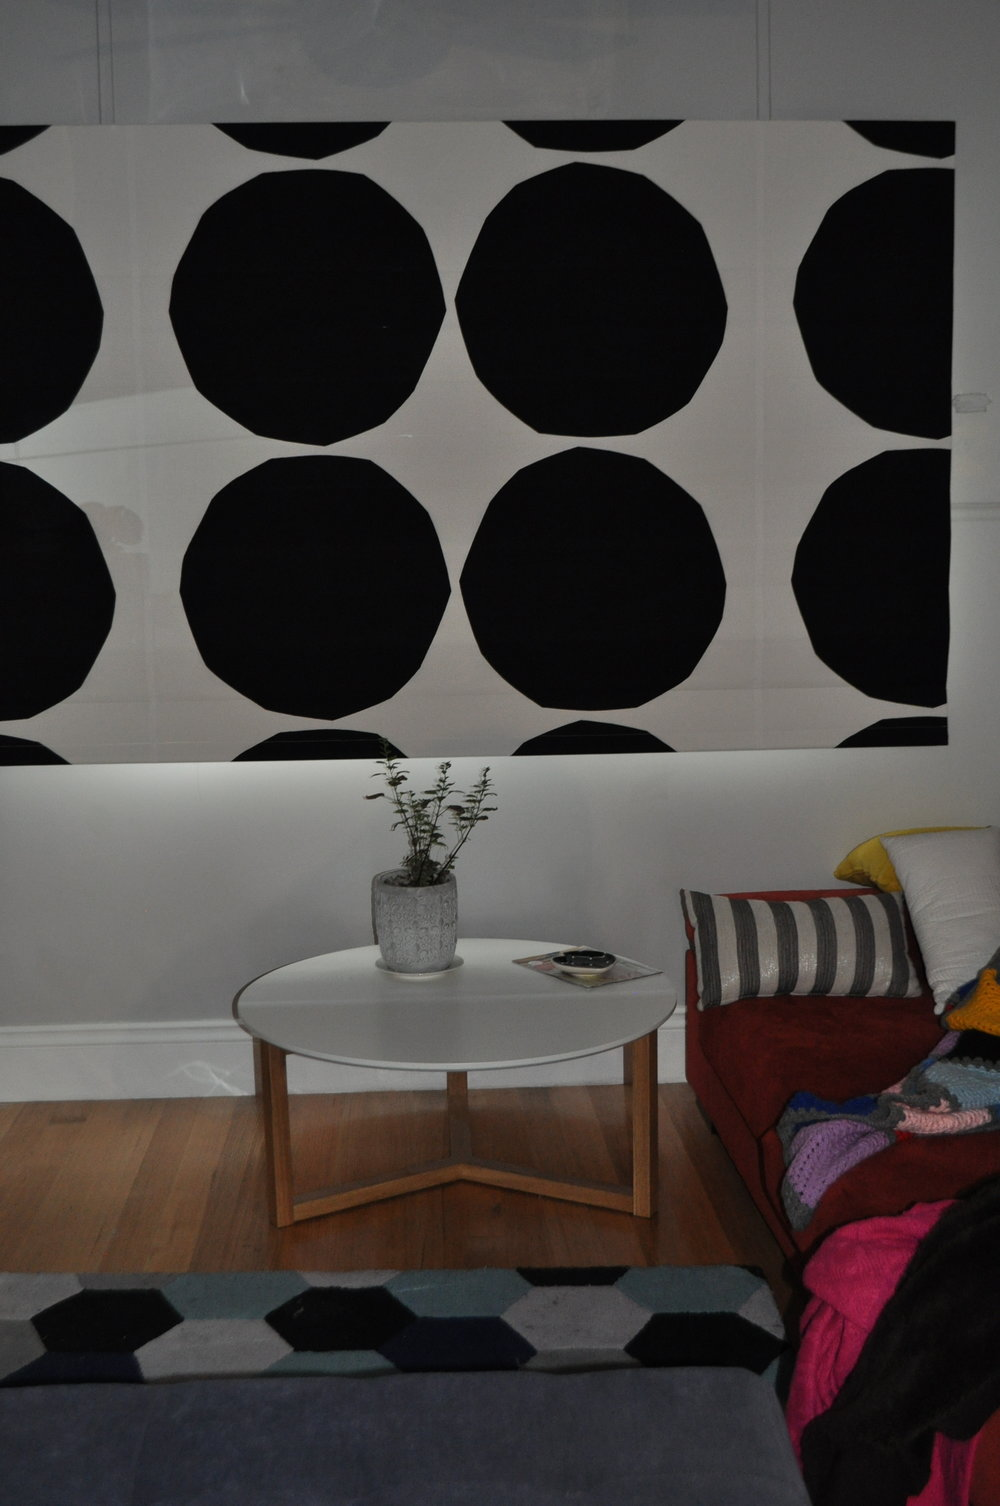 marimekko design shower classics curtains ideas and of novelties awesome fabrics